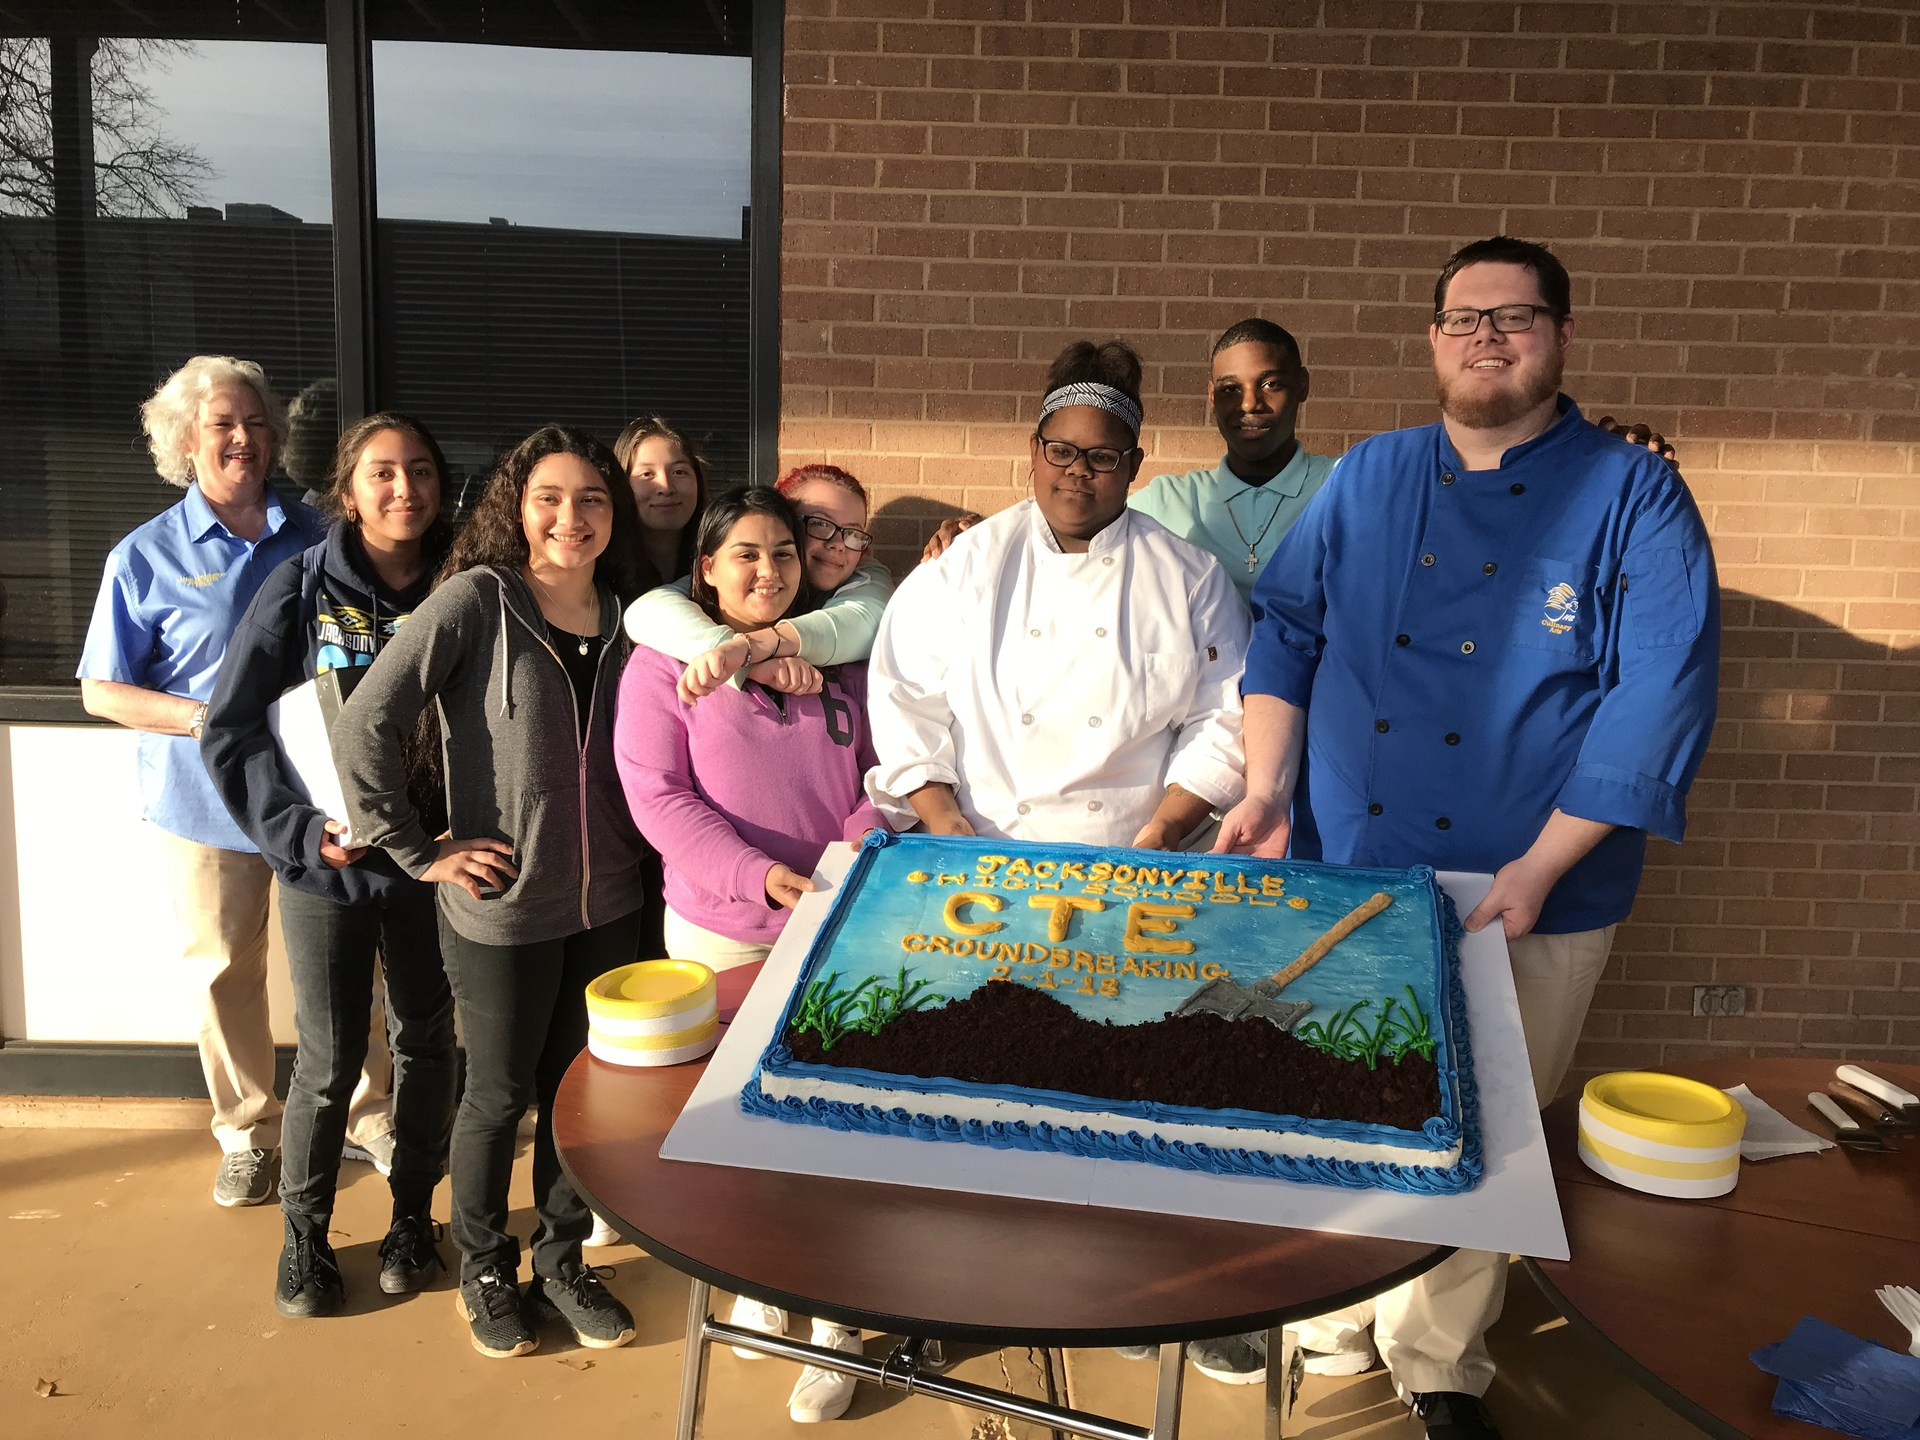 Culinary arts cake for groundbreaking